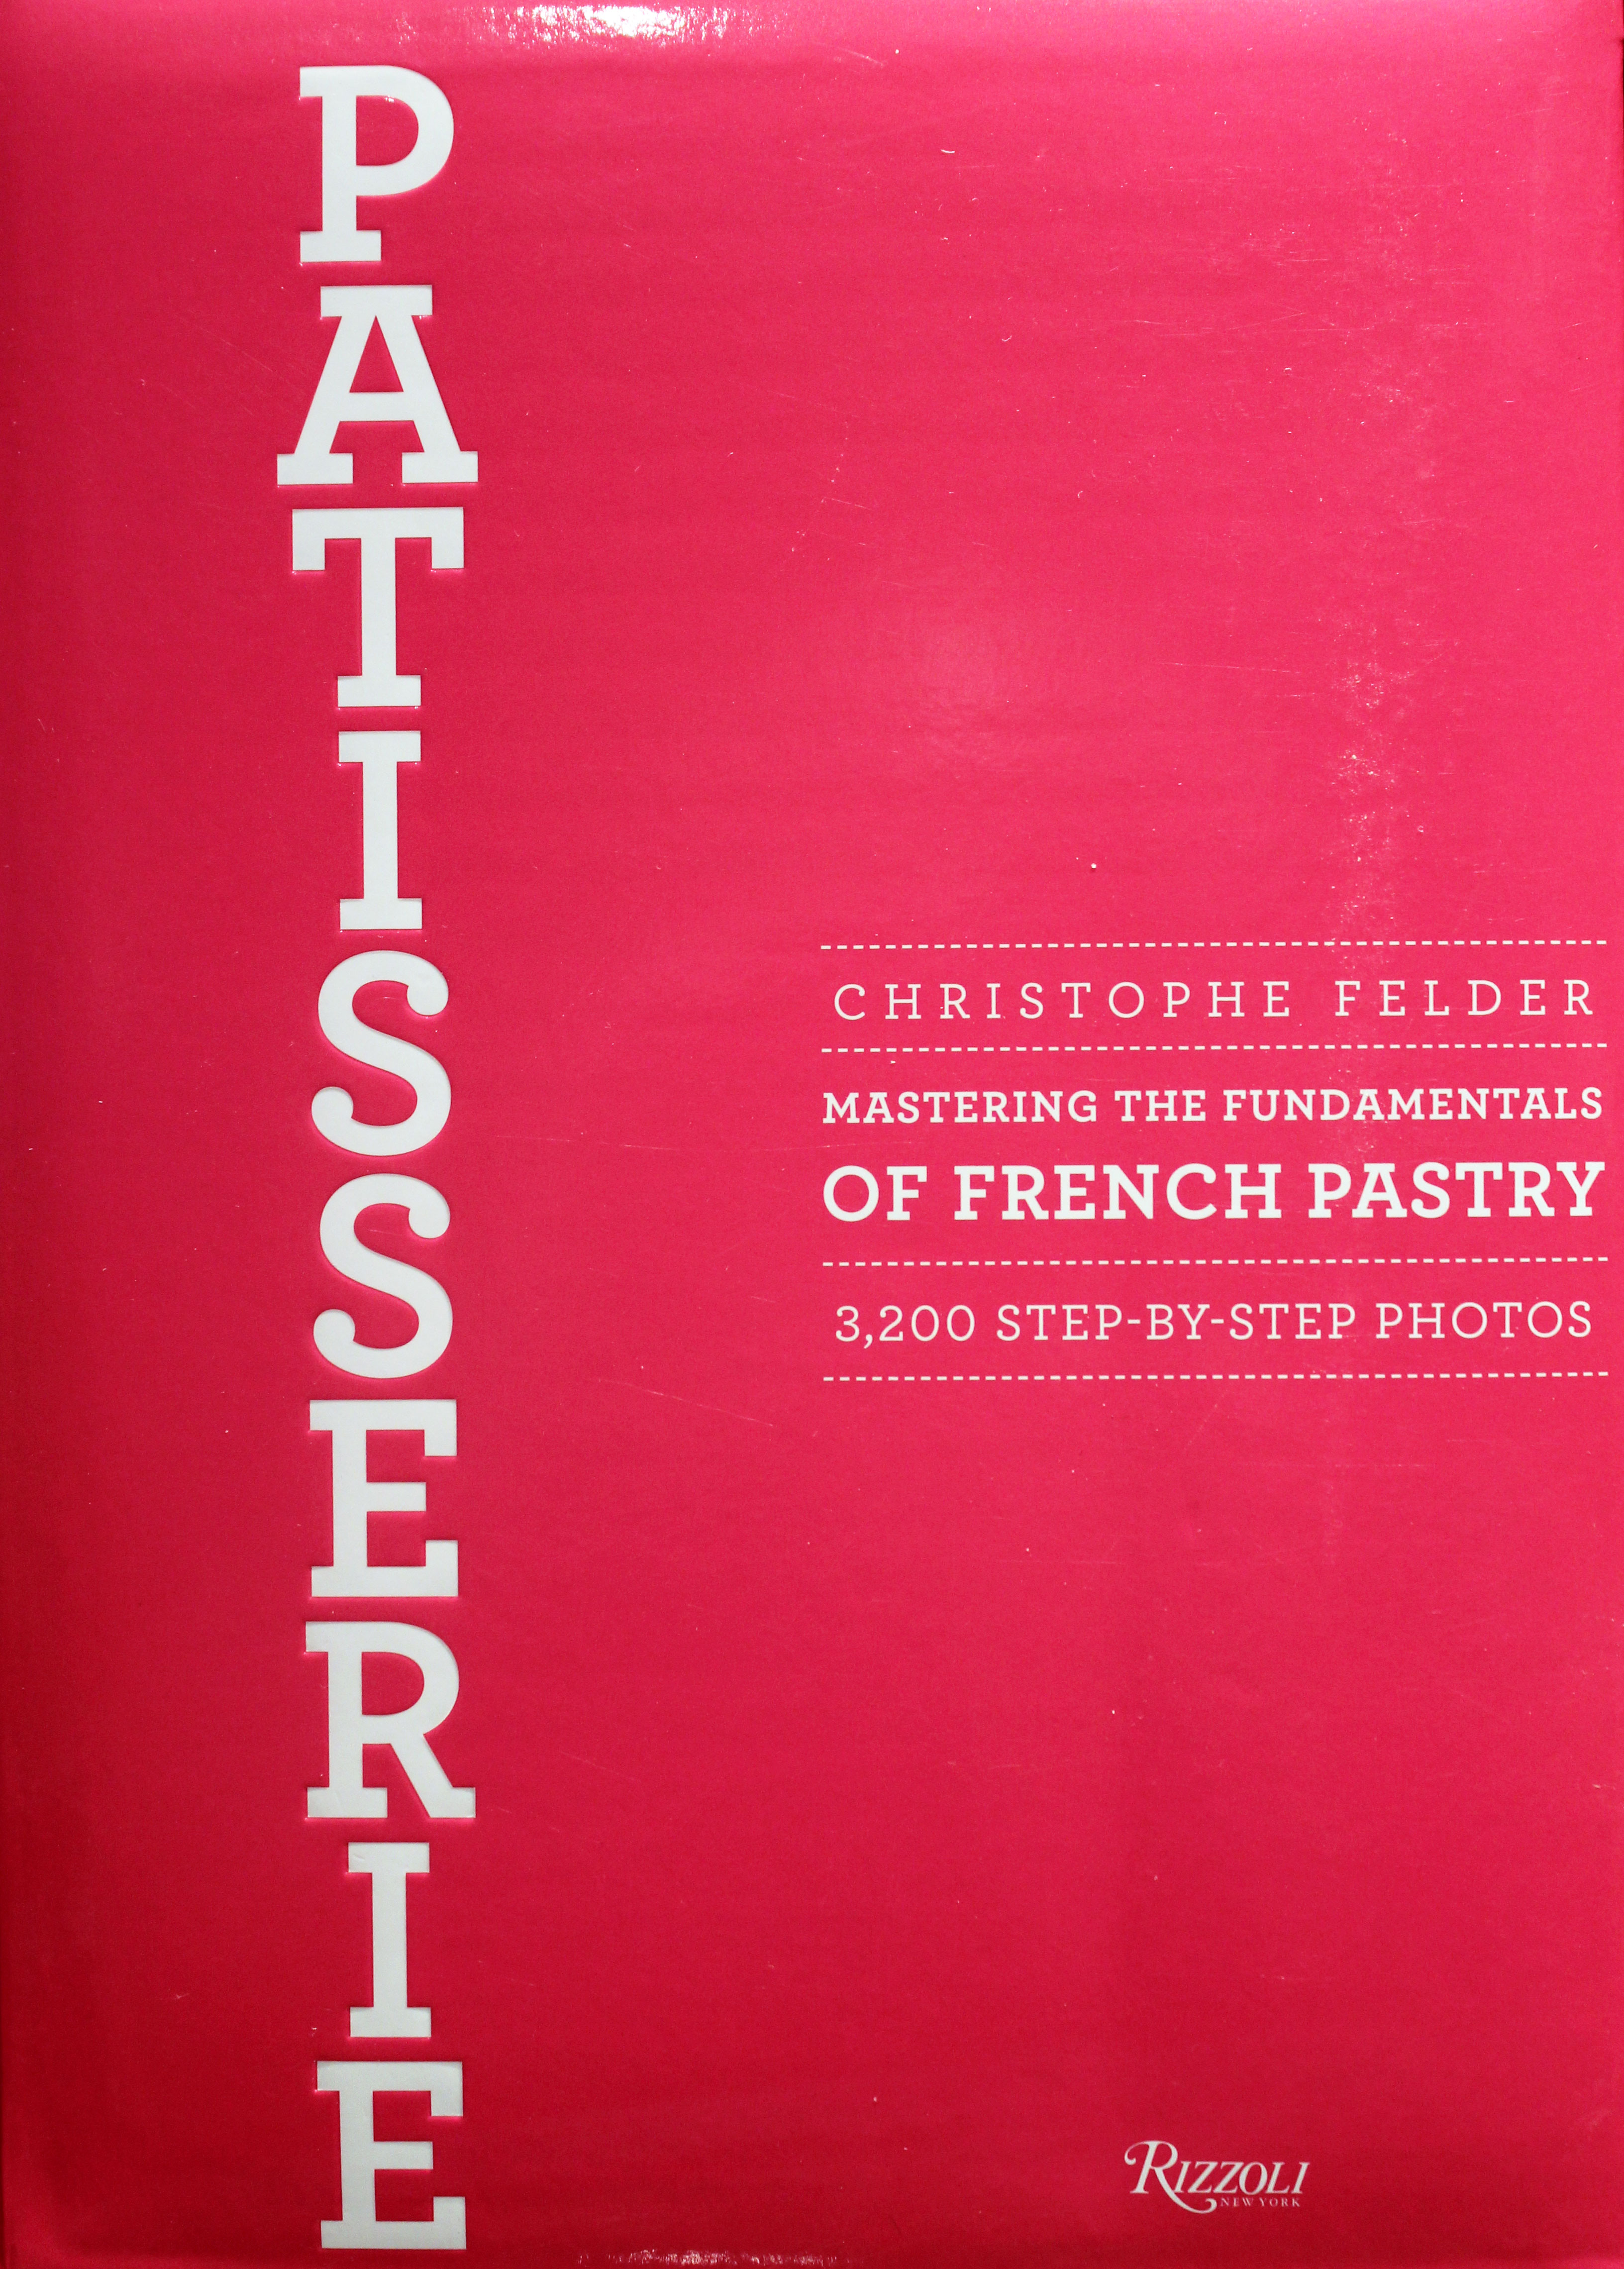 TBT and Holiday Cookbook Review: Patisserie by Christophe Felder